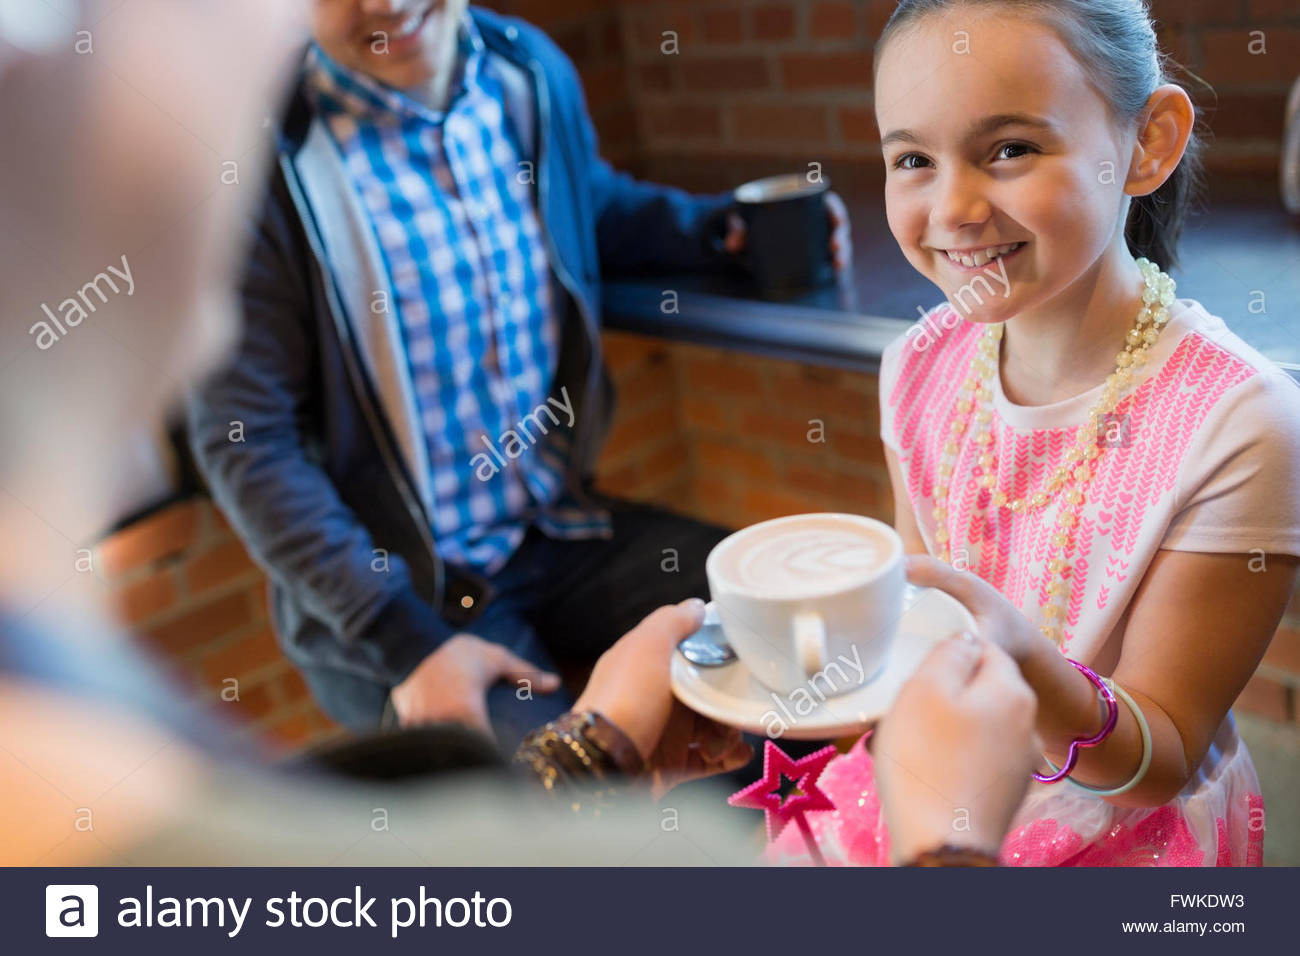 Barista serving cappuccino to girl in coffee shop - Stock Image